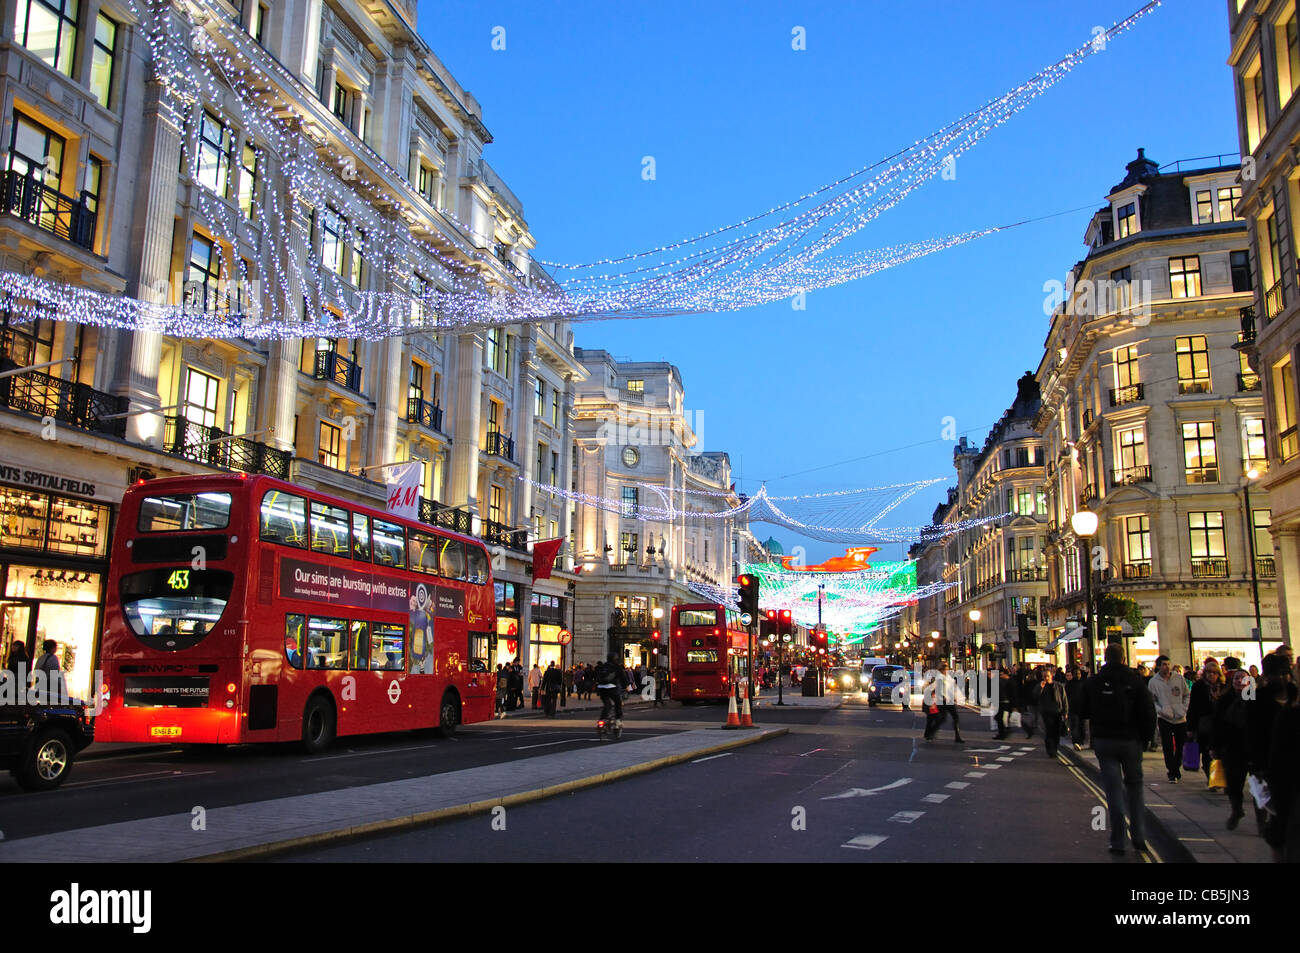 2011 Christmas lights in Regent Street, Soho, City of Westminster, London, Greater London, England, United Kingdom - Stock Image